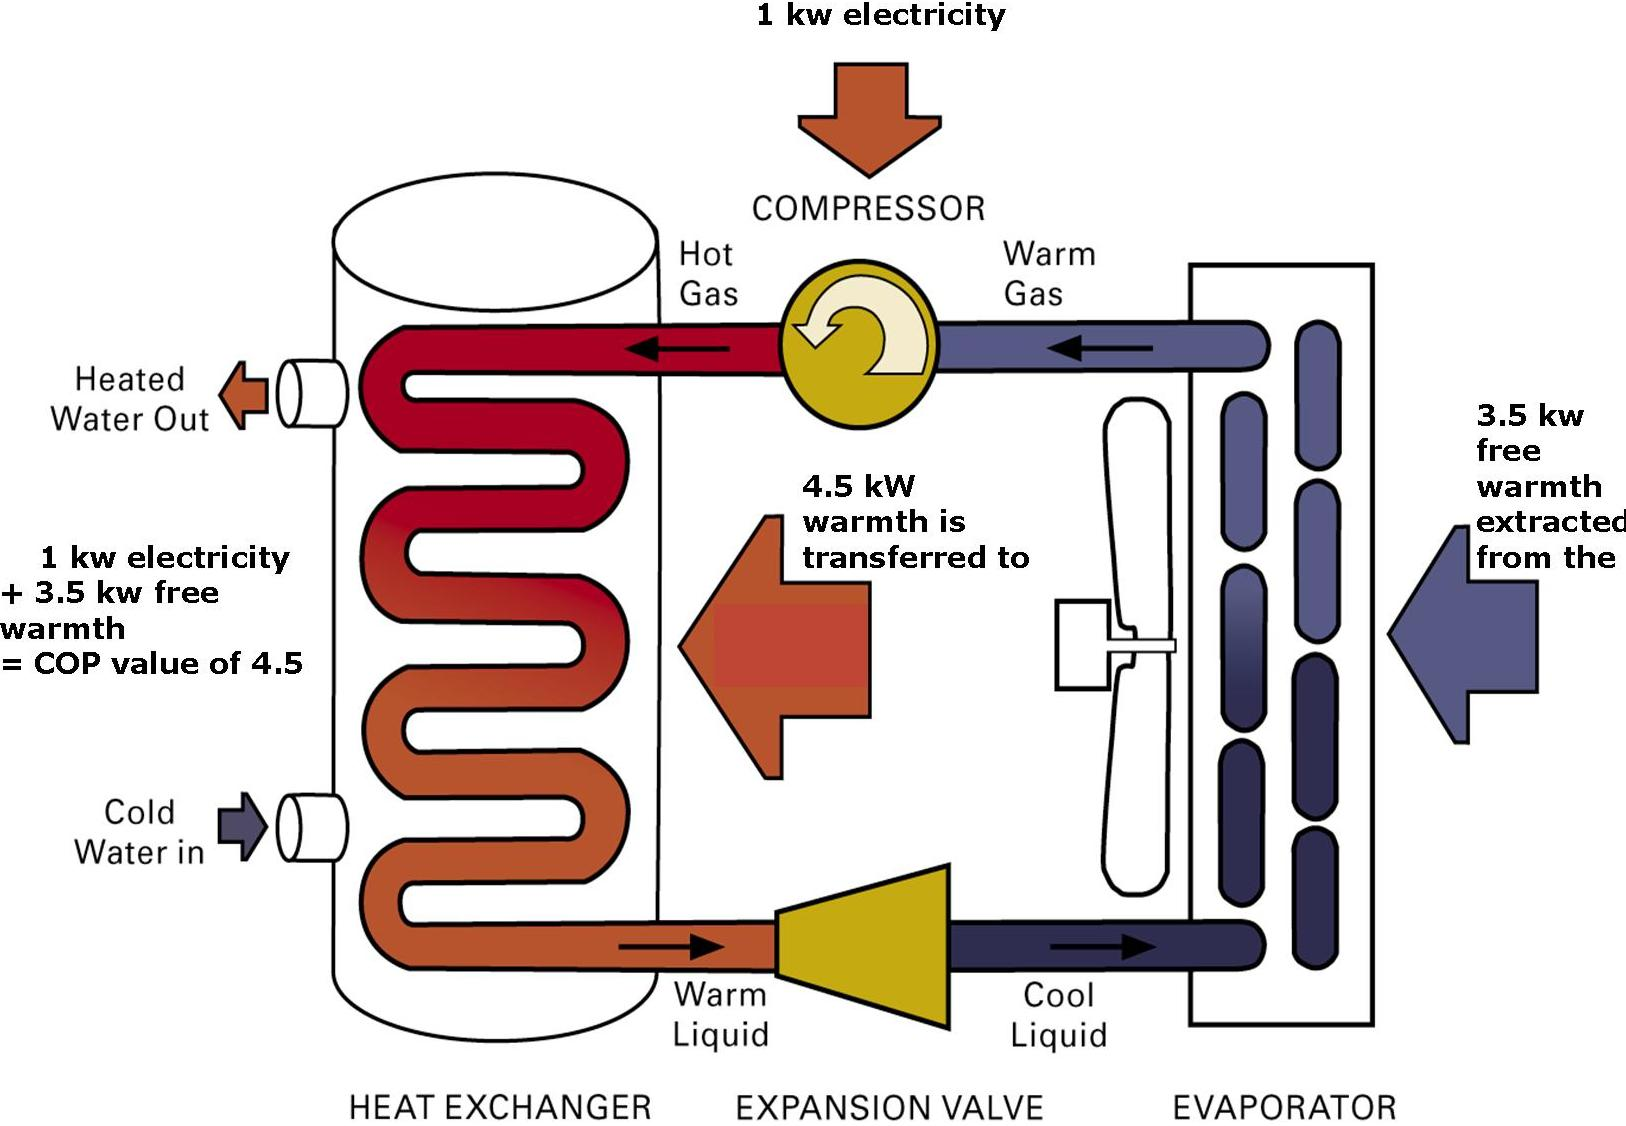 Hydronic Heating Gas Condensing Boilers Heat Pumps Solar Hot Water #BAA111